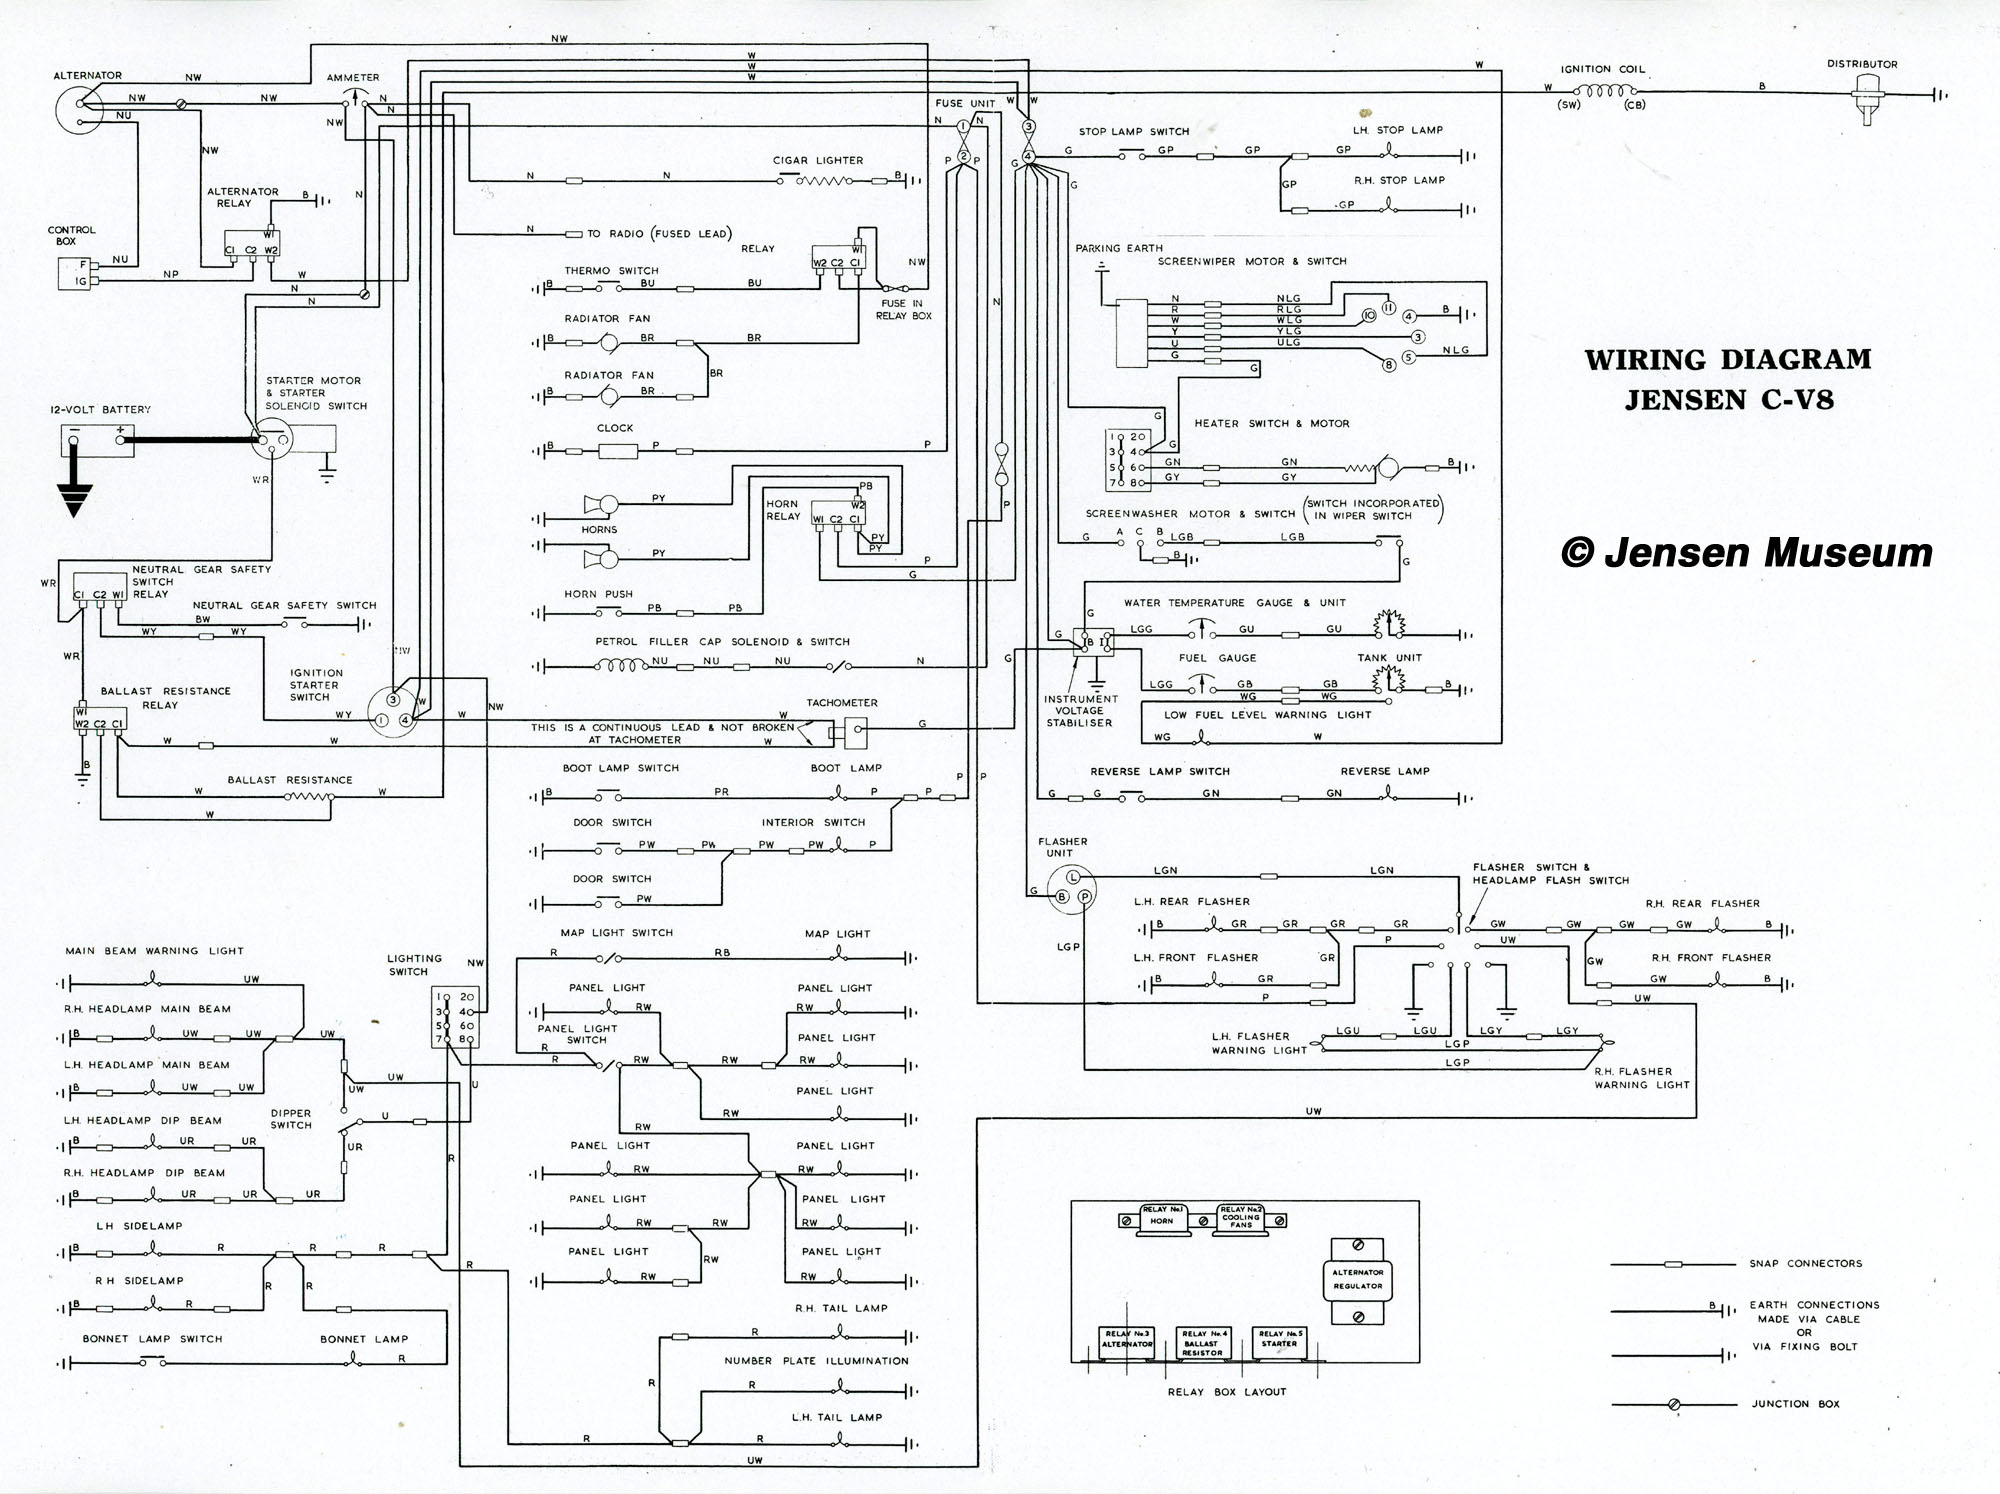 hight resolution of jensen cv8 mk i u0026 mk ii wiring diagram the jensen museumjensen cv8 mk i